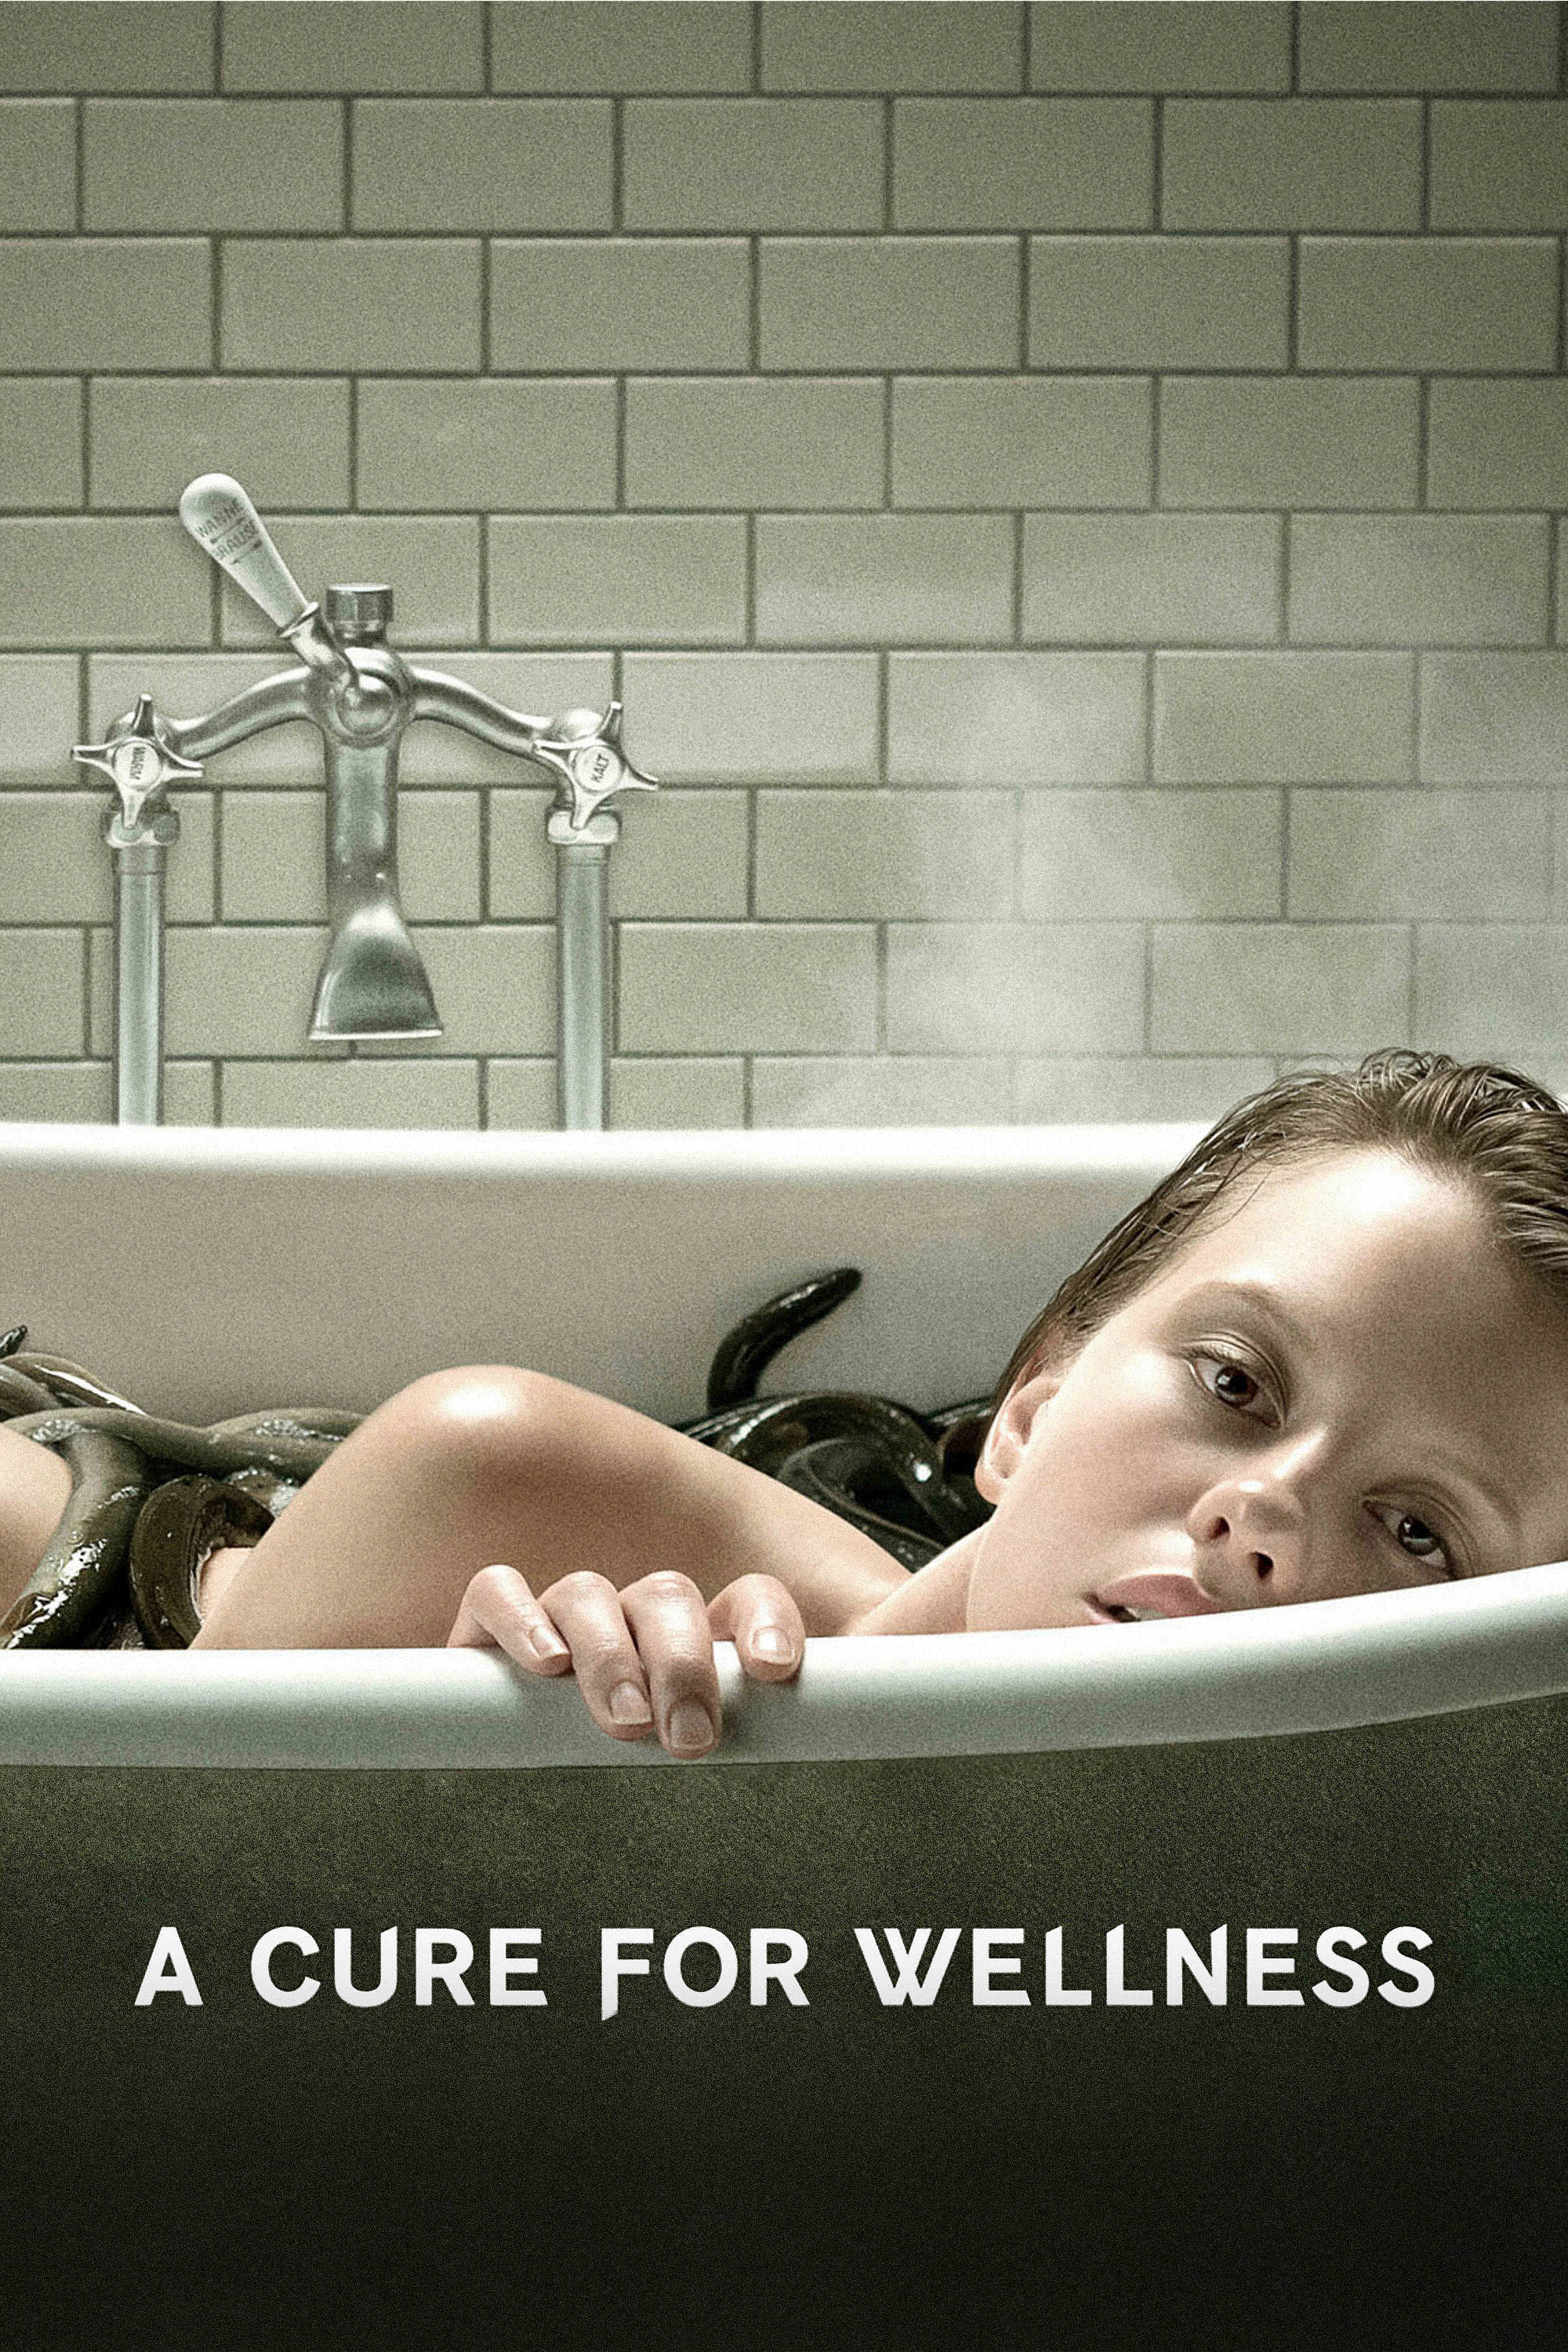 This is a poster for A Cure for Wellness.